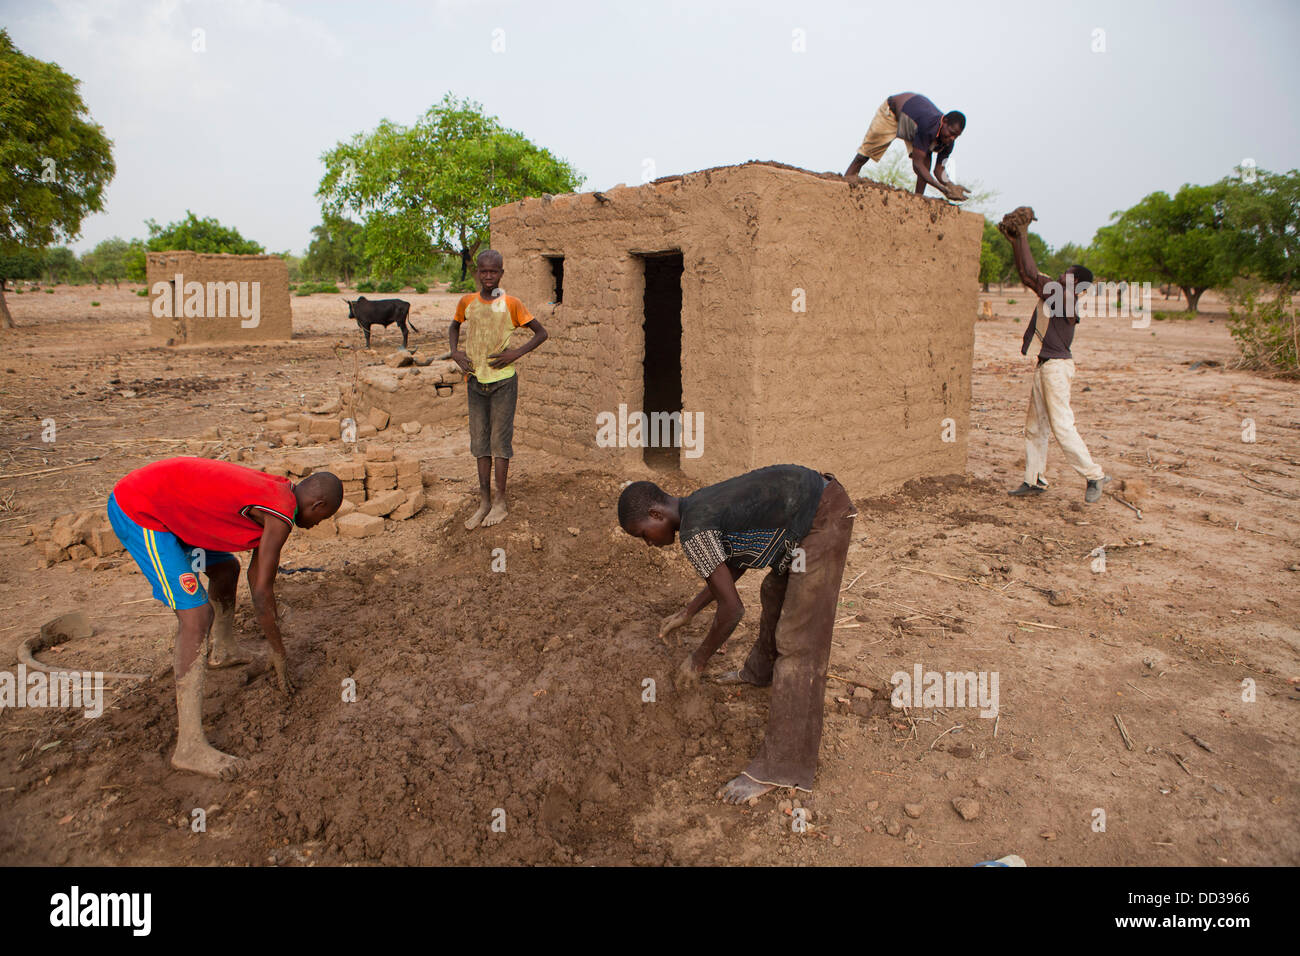 Construction work in Dédougou province, Burkina Faso, West Africa. - Stock Image